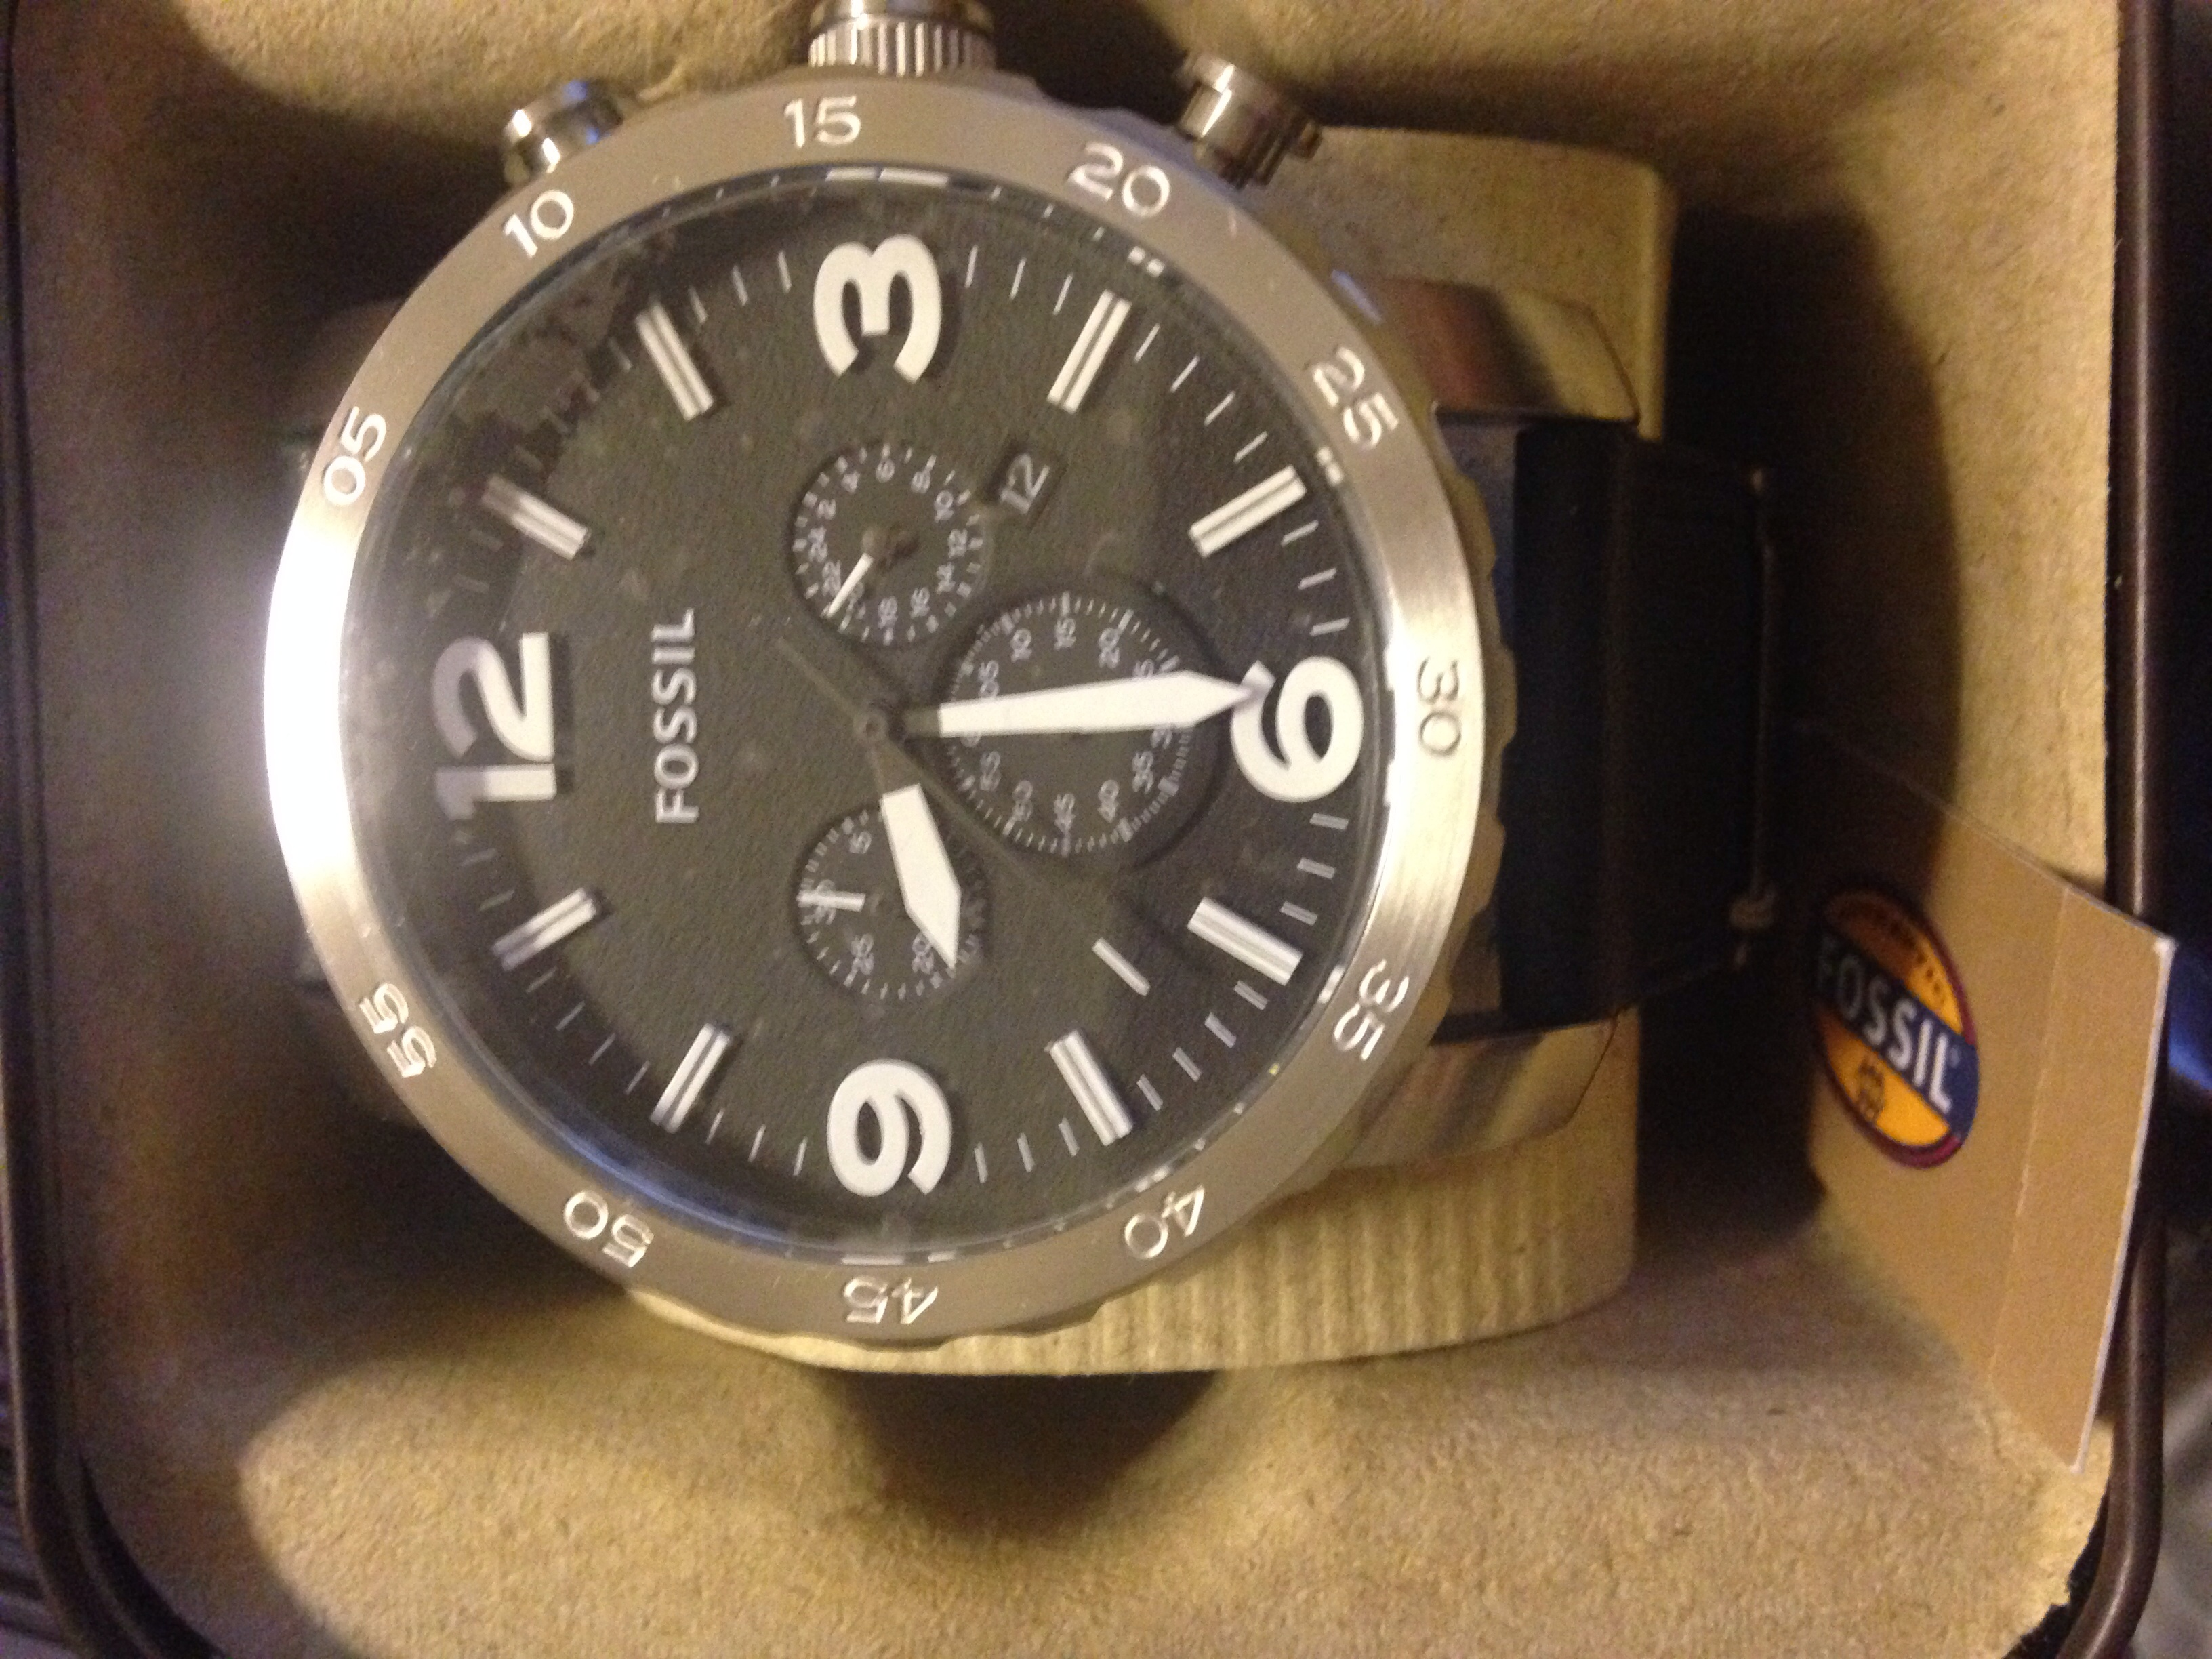 Gents Fossil Nate Chronograph Watch Jr1436 Jr1401 Black Stainless Steel I Love This The Design Of It Was A Present For My Boyfriend And He Loves Too Has Large Face But Does Not Look